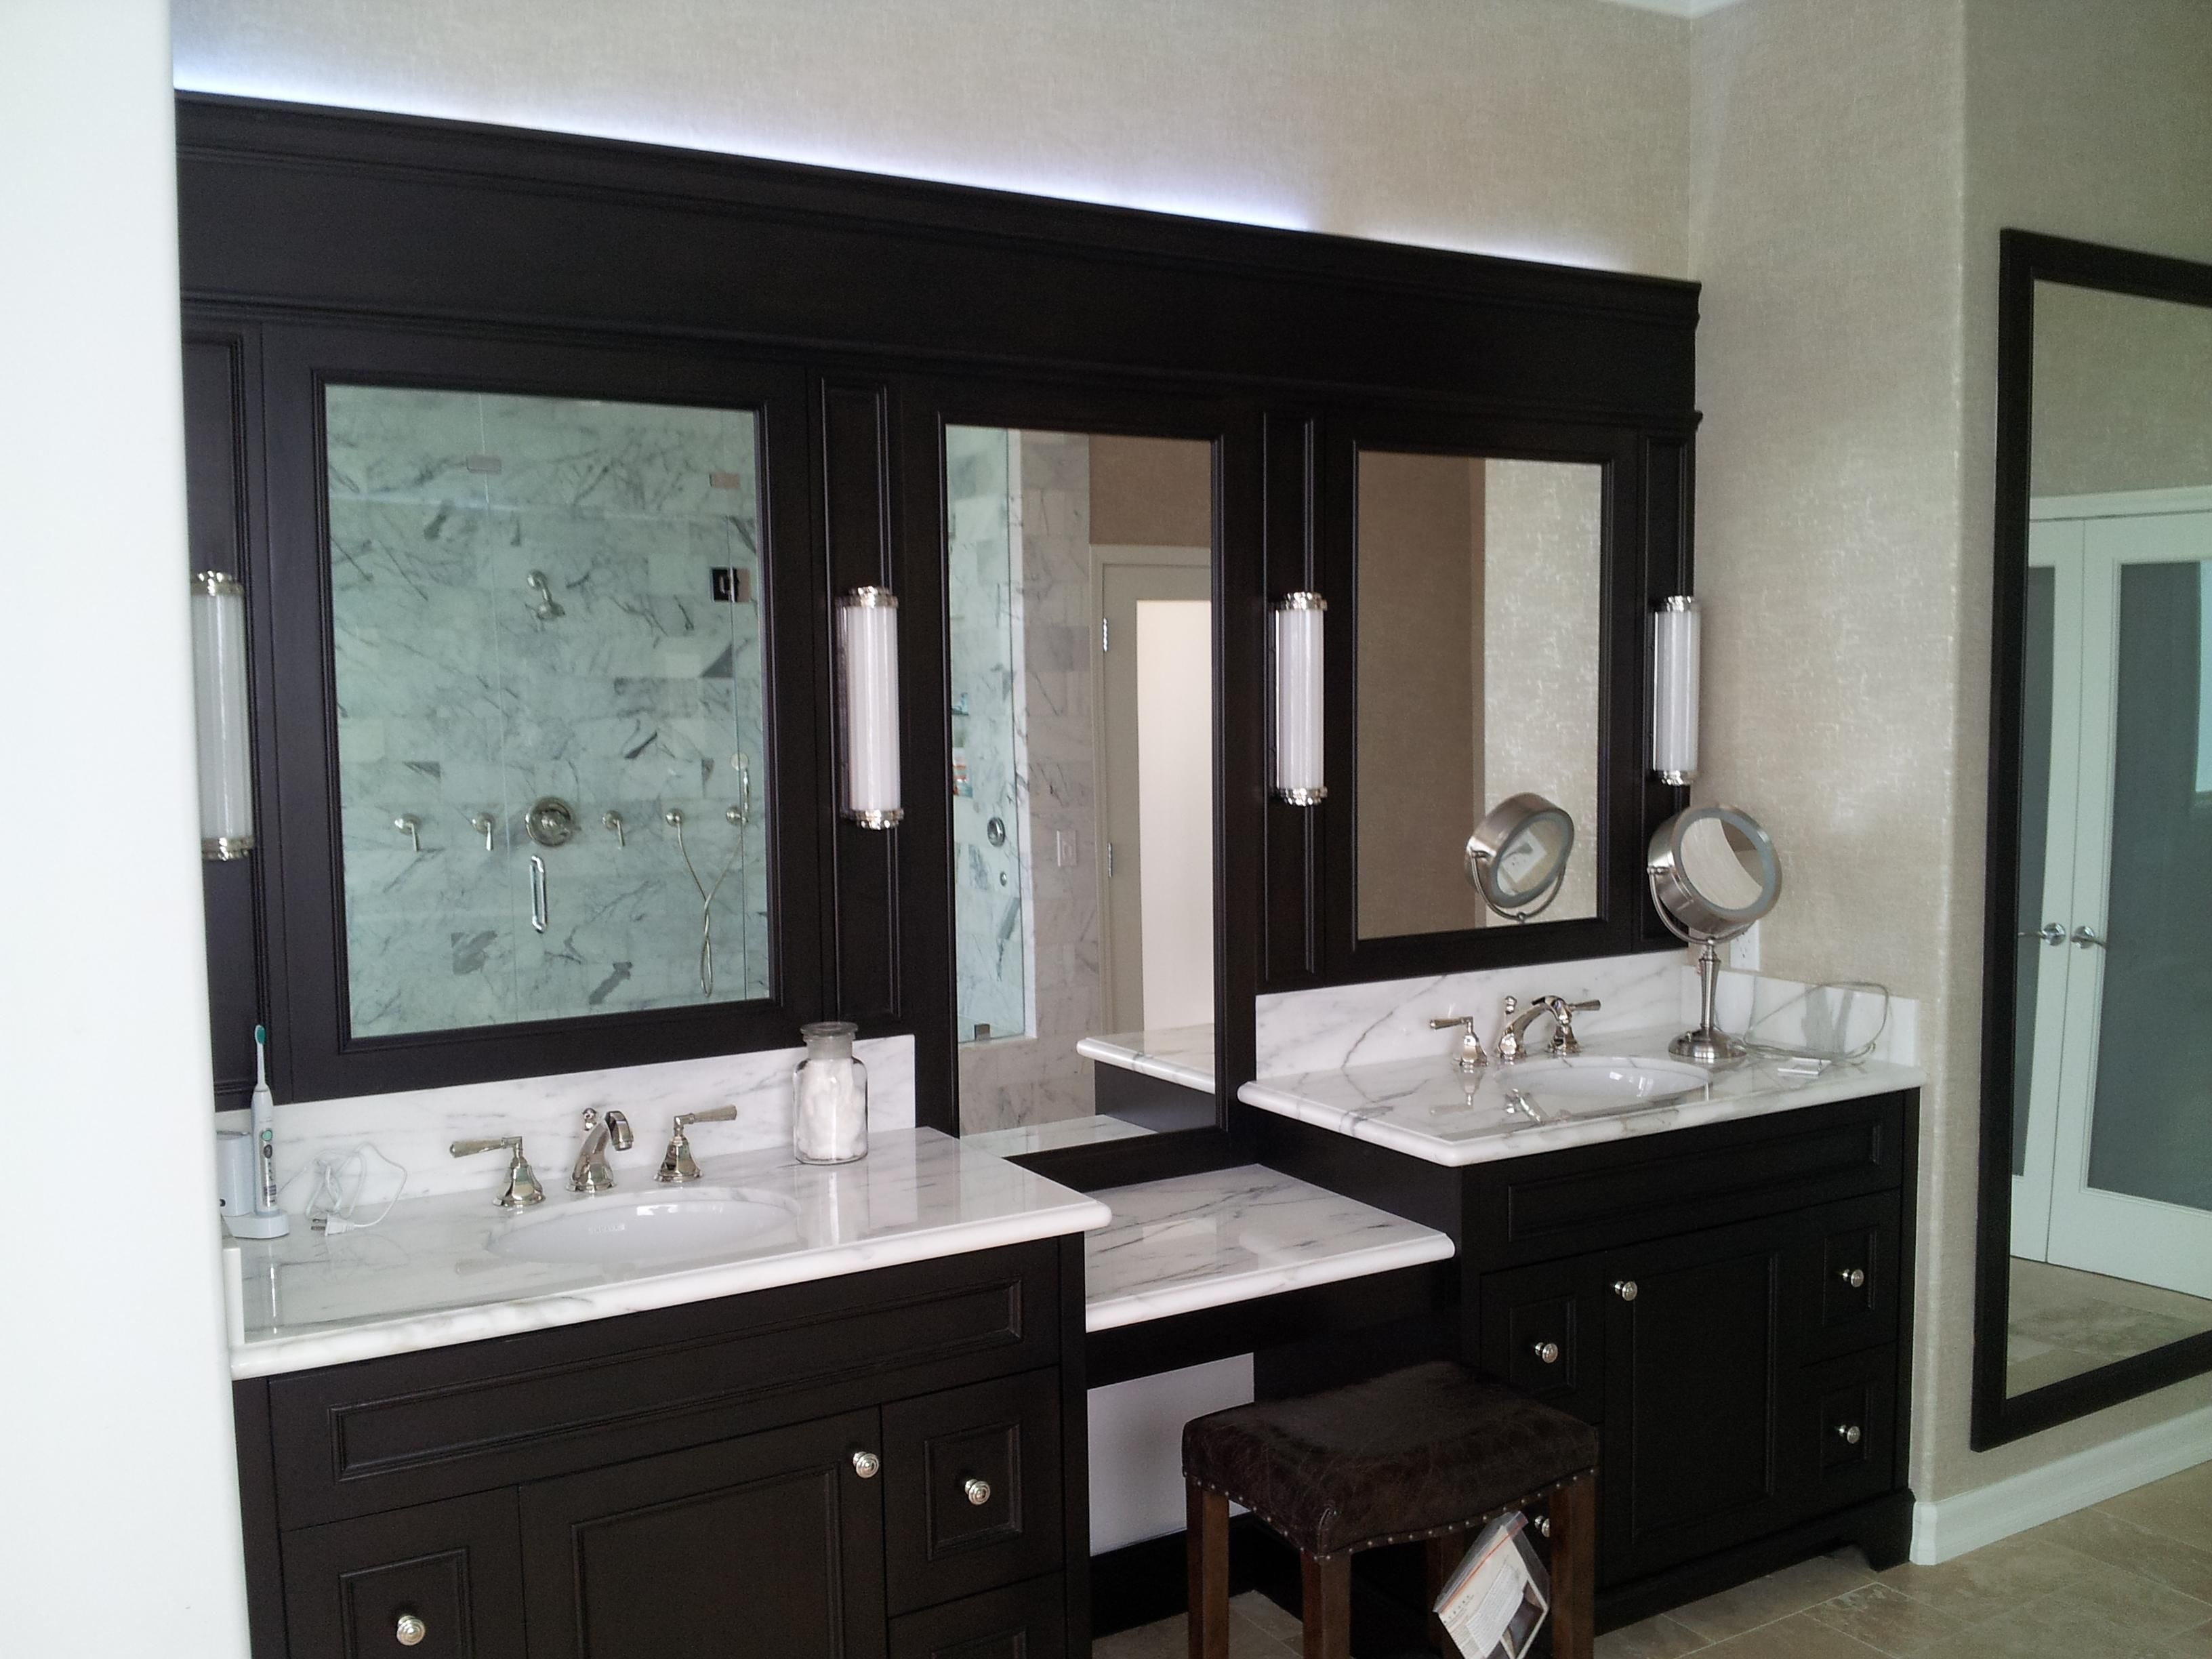 Master Bathroom Vanity Mirror Ideas a reason why you shouldn't demolish your old barn just yet | white